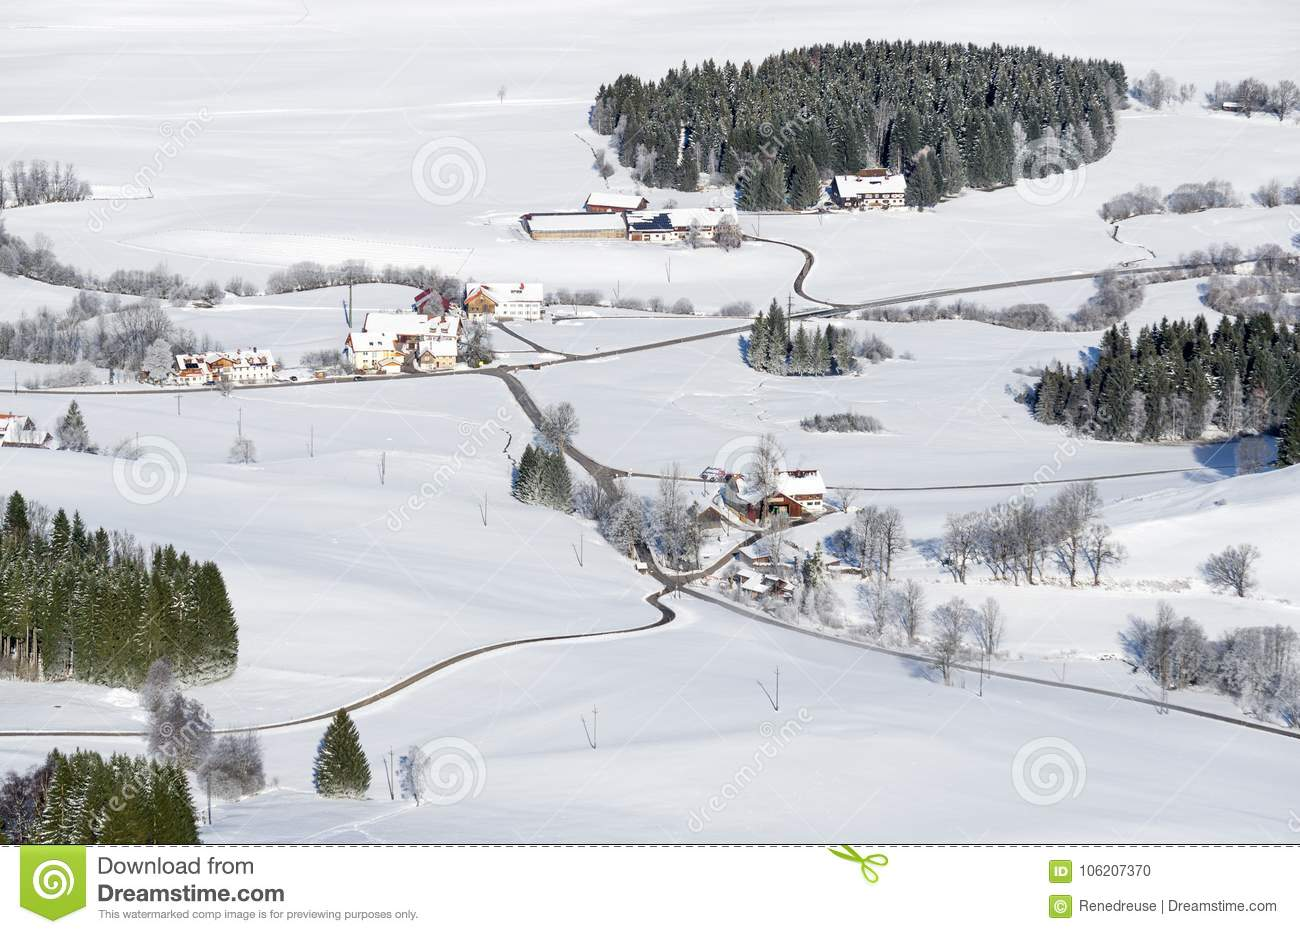 Download Lovely Rural Countryside On Snowy Winter Day. Aerial View Of Barnyards And Farm. Weitnau, Allgau, Bavaria, Germany. Stock Photo - Image of country, outdoor: 106207370